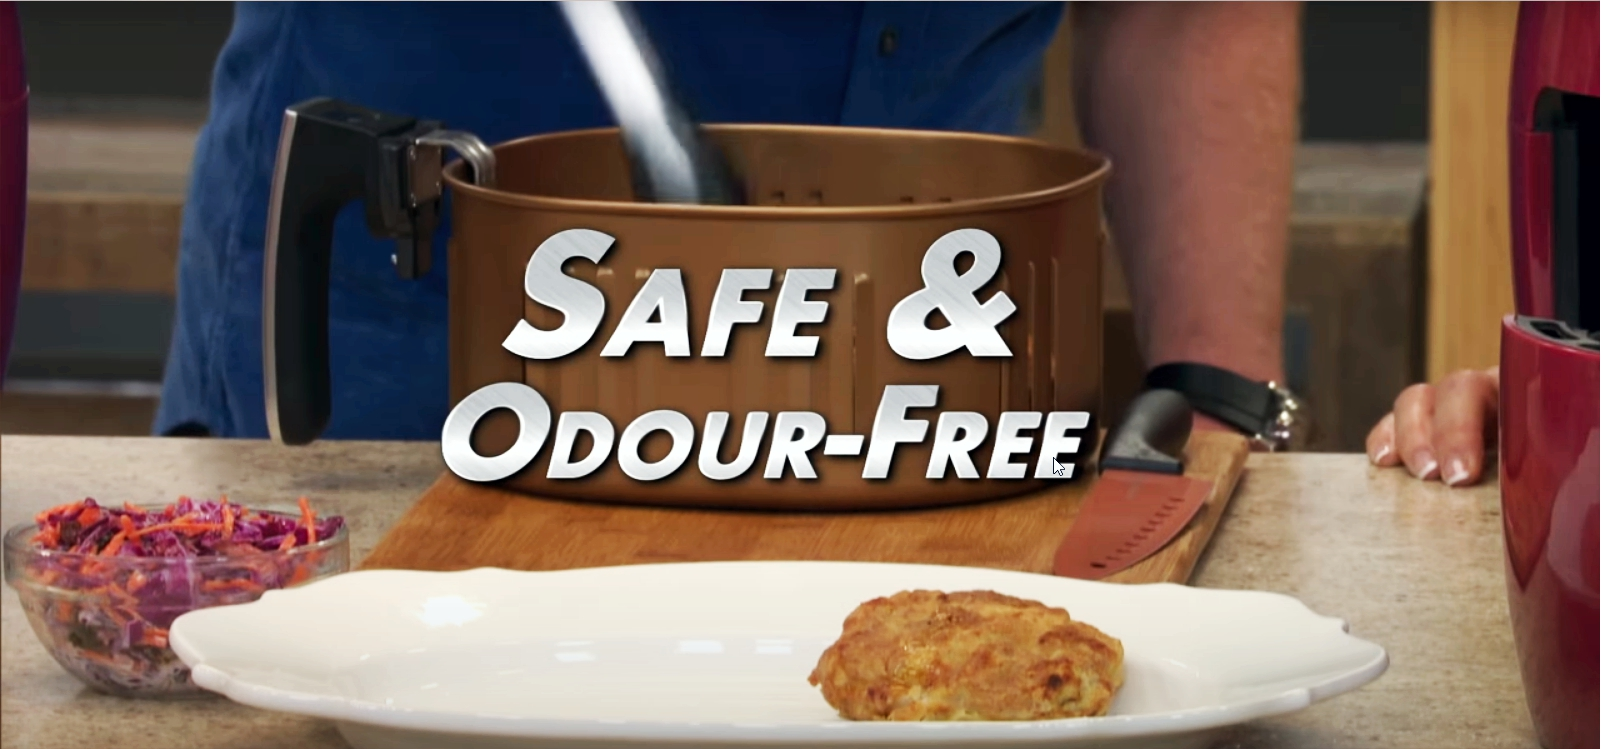 power air fryer is safe and odour free